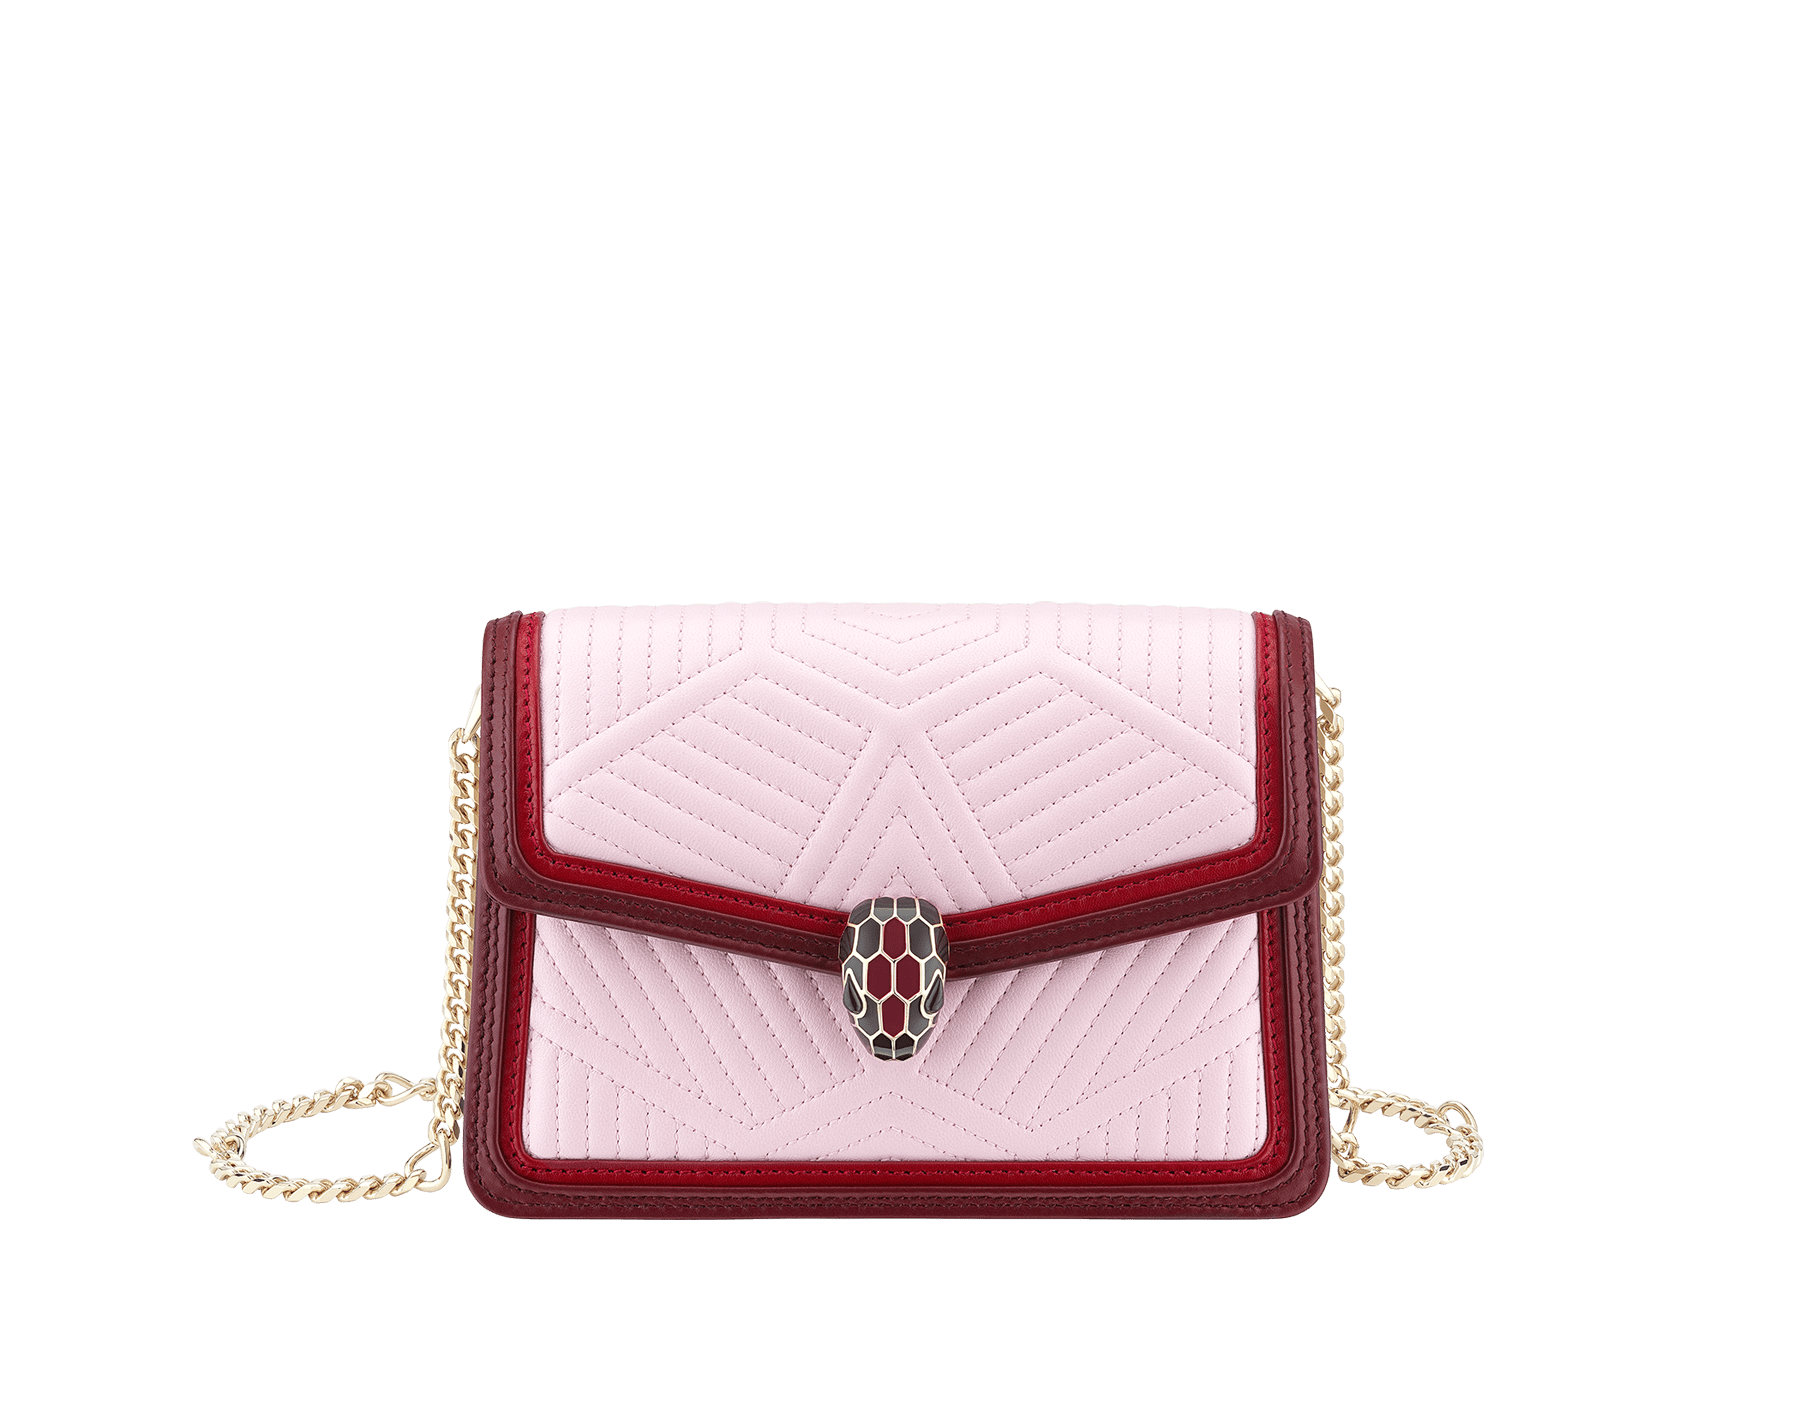 """Serpenti Diamond Blast"" crossbody micro bag in rosa di francia quilted nappa leather body and Roman garnet calf leather frames. Iconic snakehead closure in light gold plated brass enriched with black and ruby red enamel and black onyx eyes. 288844 image 1"